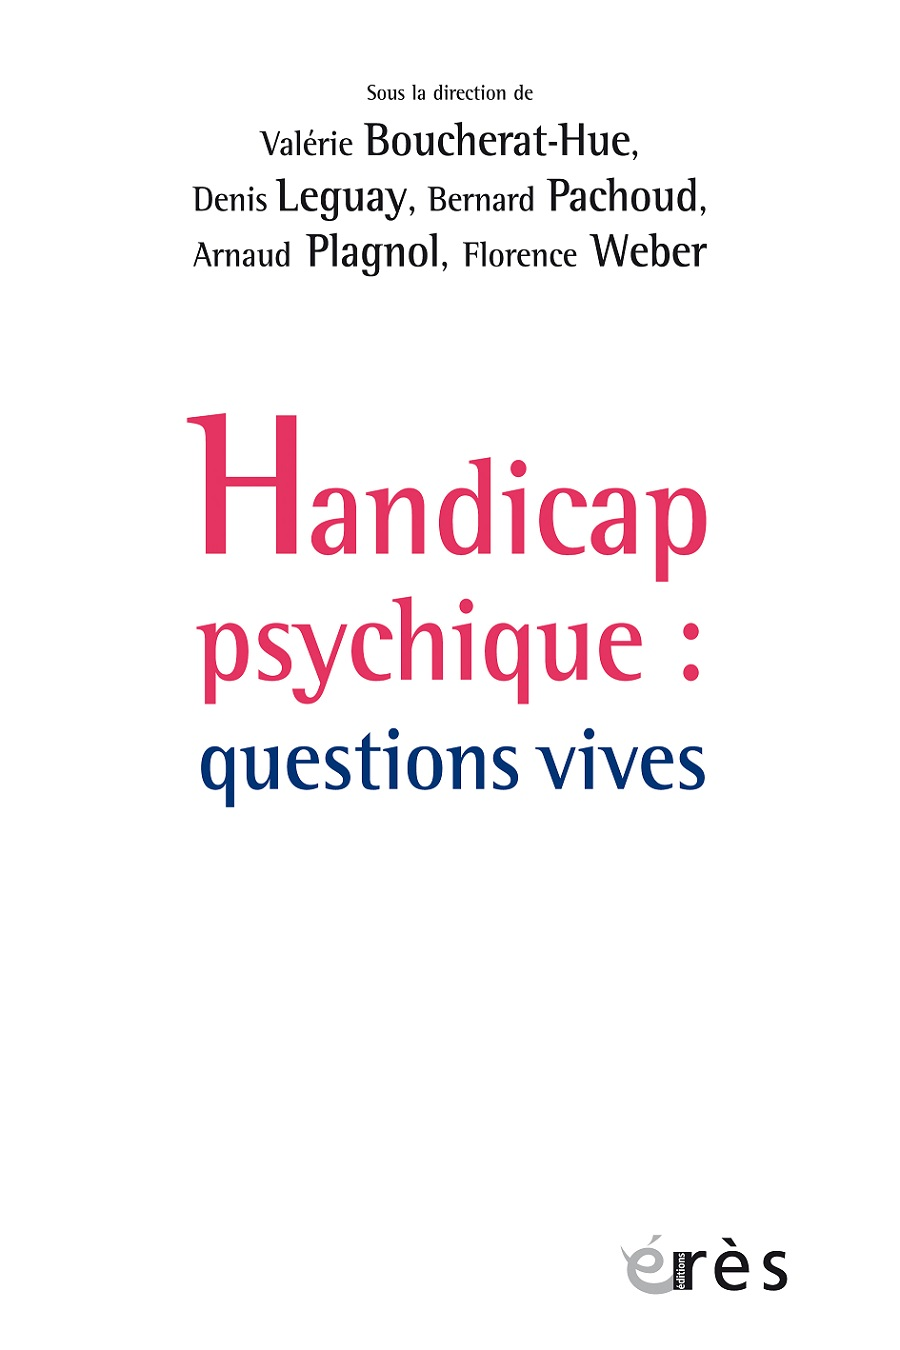 Handicap psychique questions vives edition eres 2016